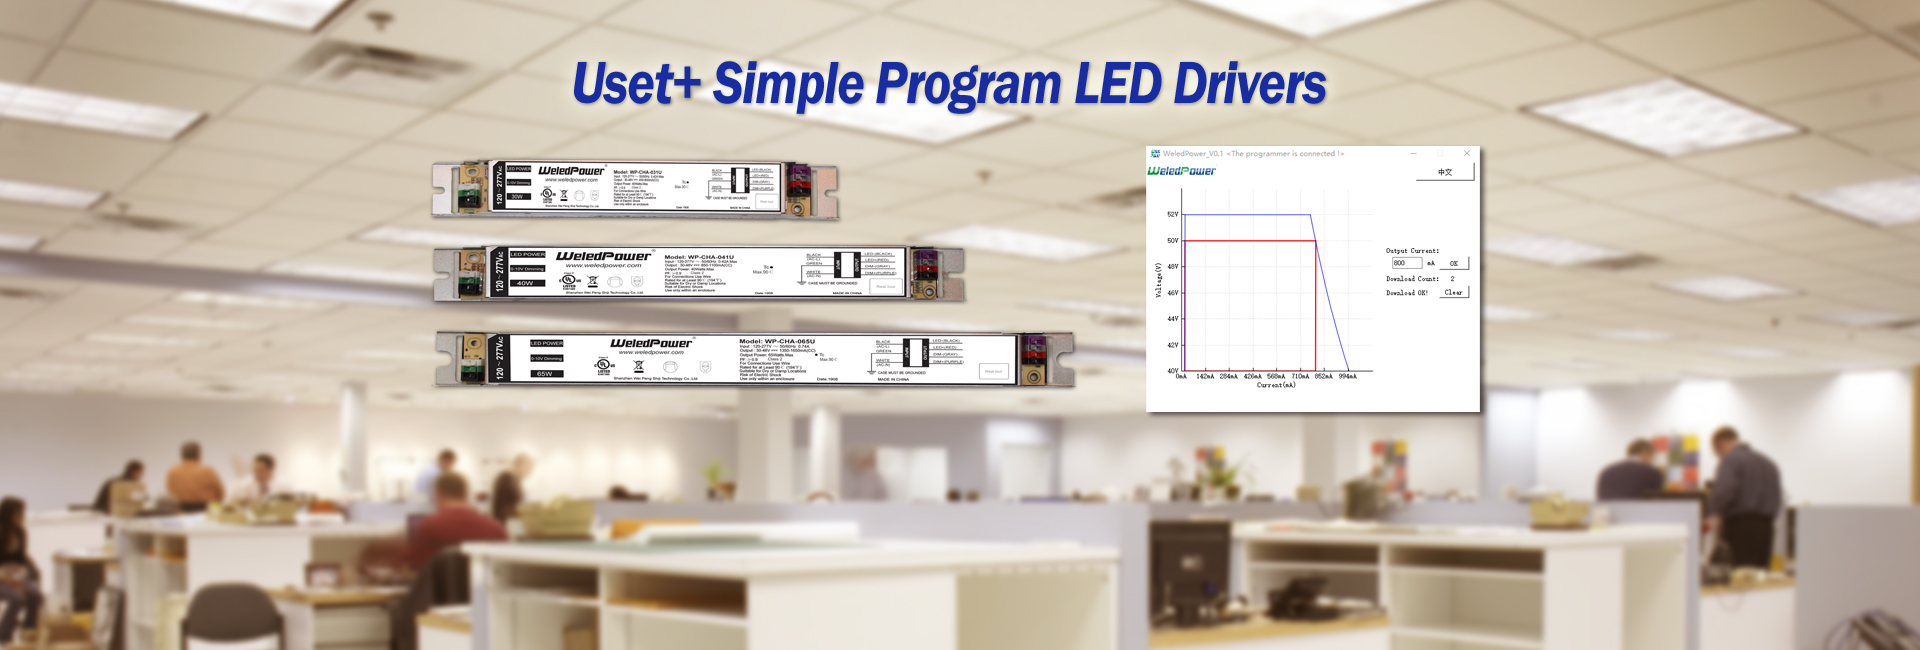 Uset+ Simple Program LED drivers